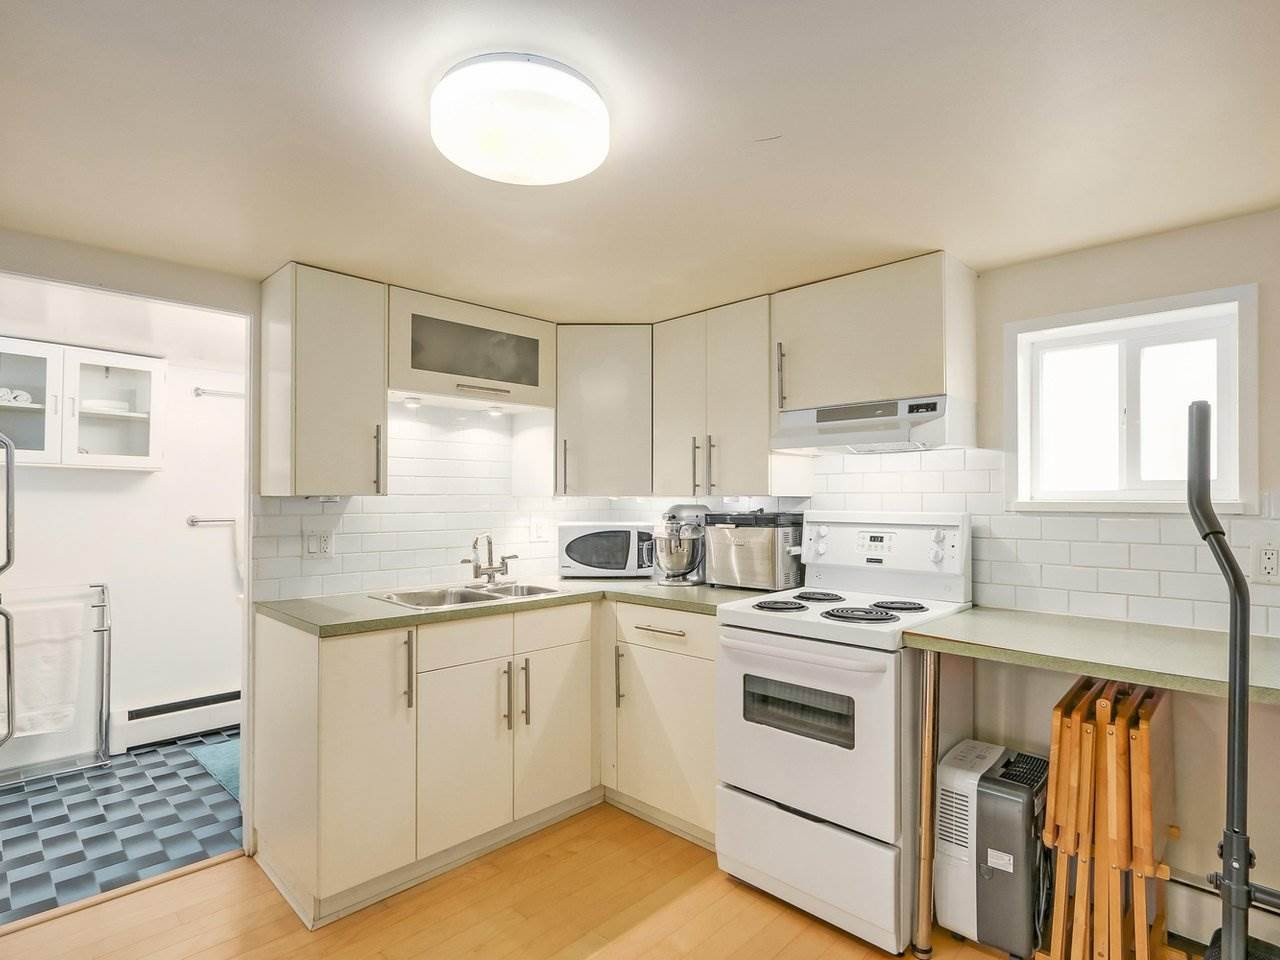 Photo 17: Photos: 1761 E 13TH AVENUE in Vancouver: Grandview VE House for sale (Vancouver East)  : MLS®# R2202018